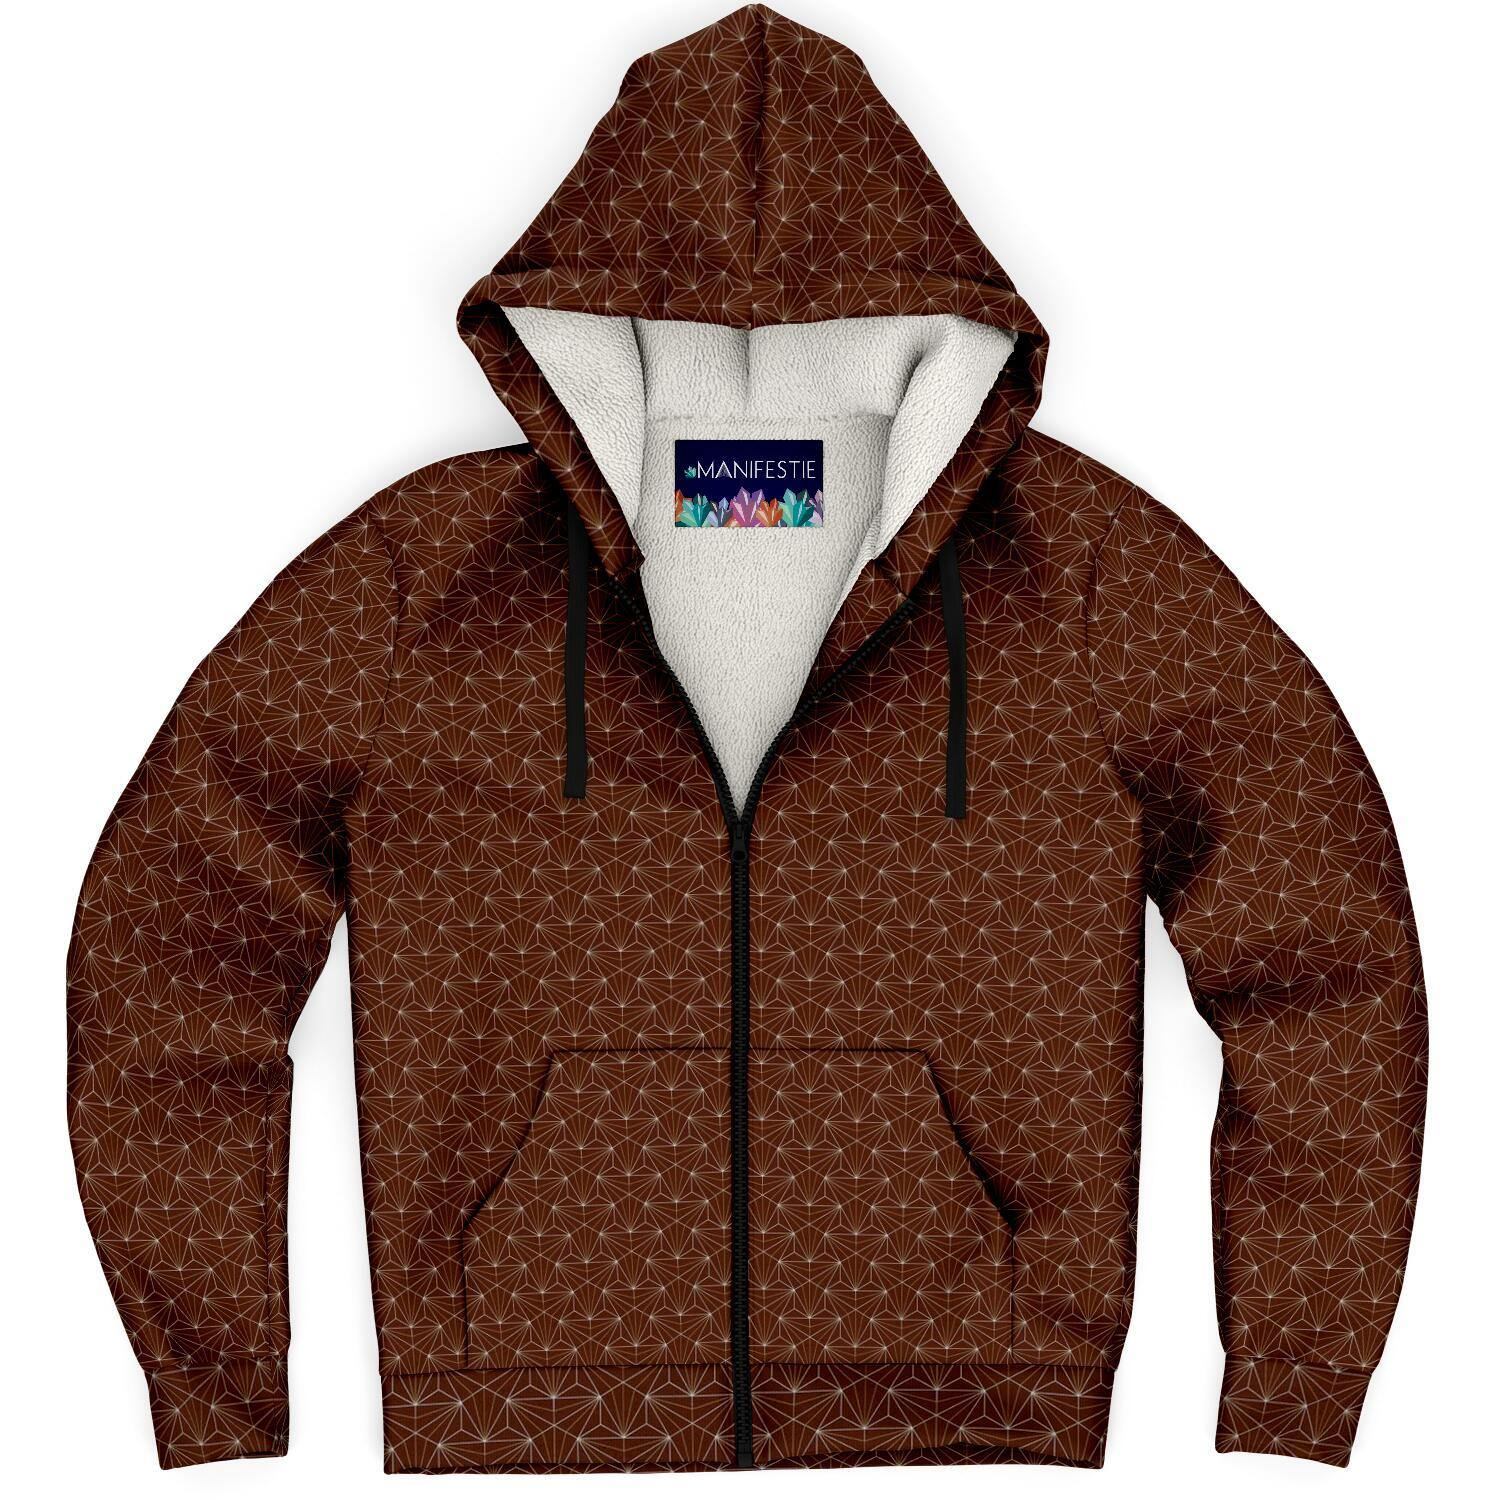 Jasper Sacred Connections Premium Sherpa Lined Zip Hoodie